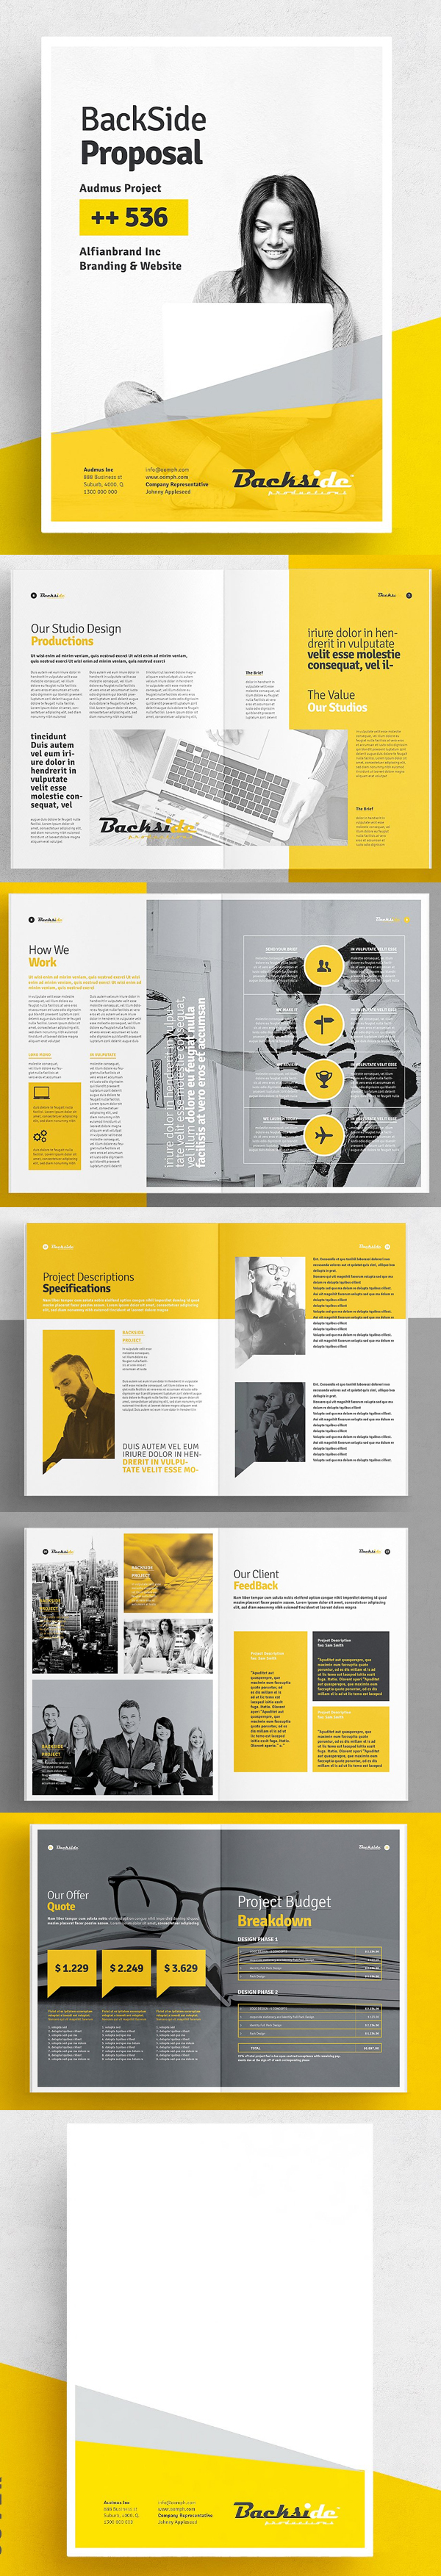 100 Professional Corporate Brochure Templates - 26